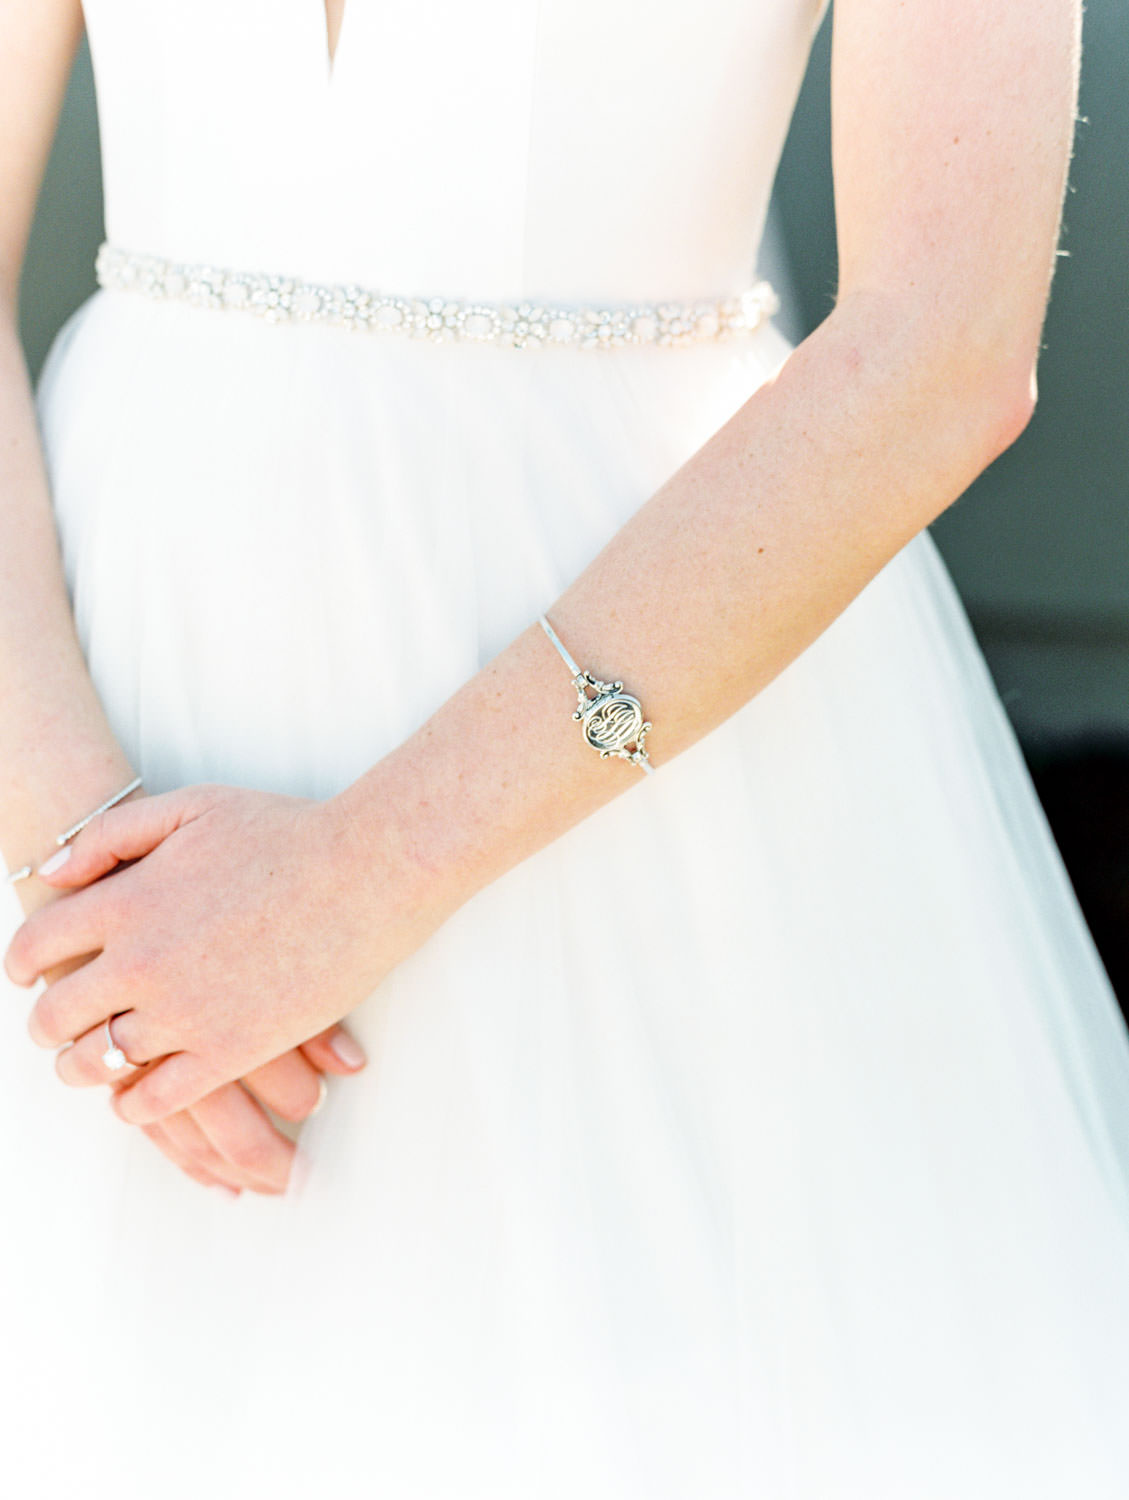 Bride wearing monogram silver bracelet. Estancia La Jolla wedding shot on film by Cavin Elizabeth Photography. Estancia La Jolla wedding shot on film by Cavin Elizabeth Photography